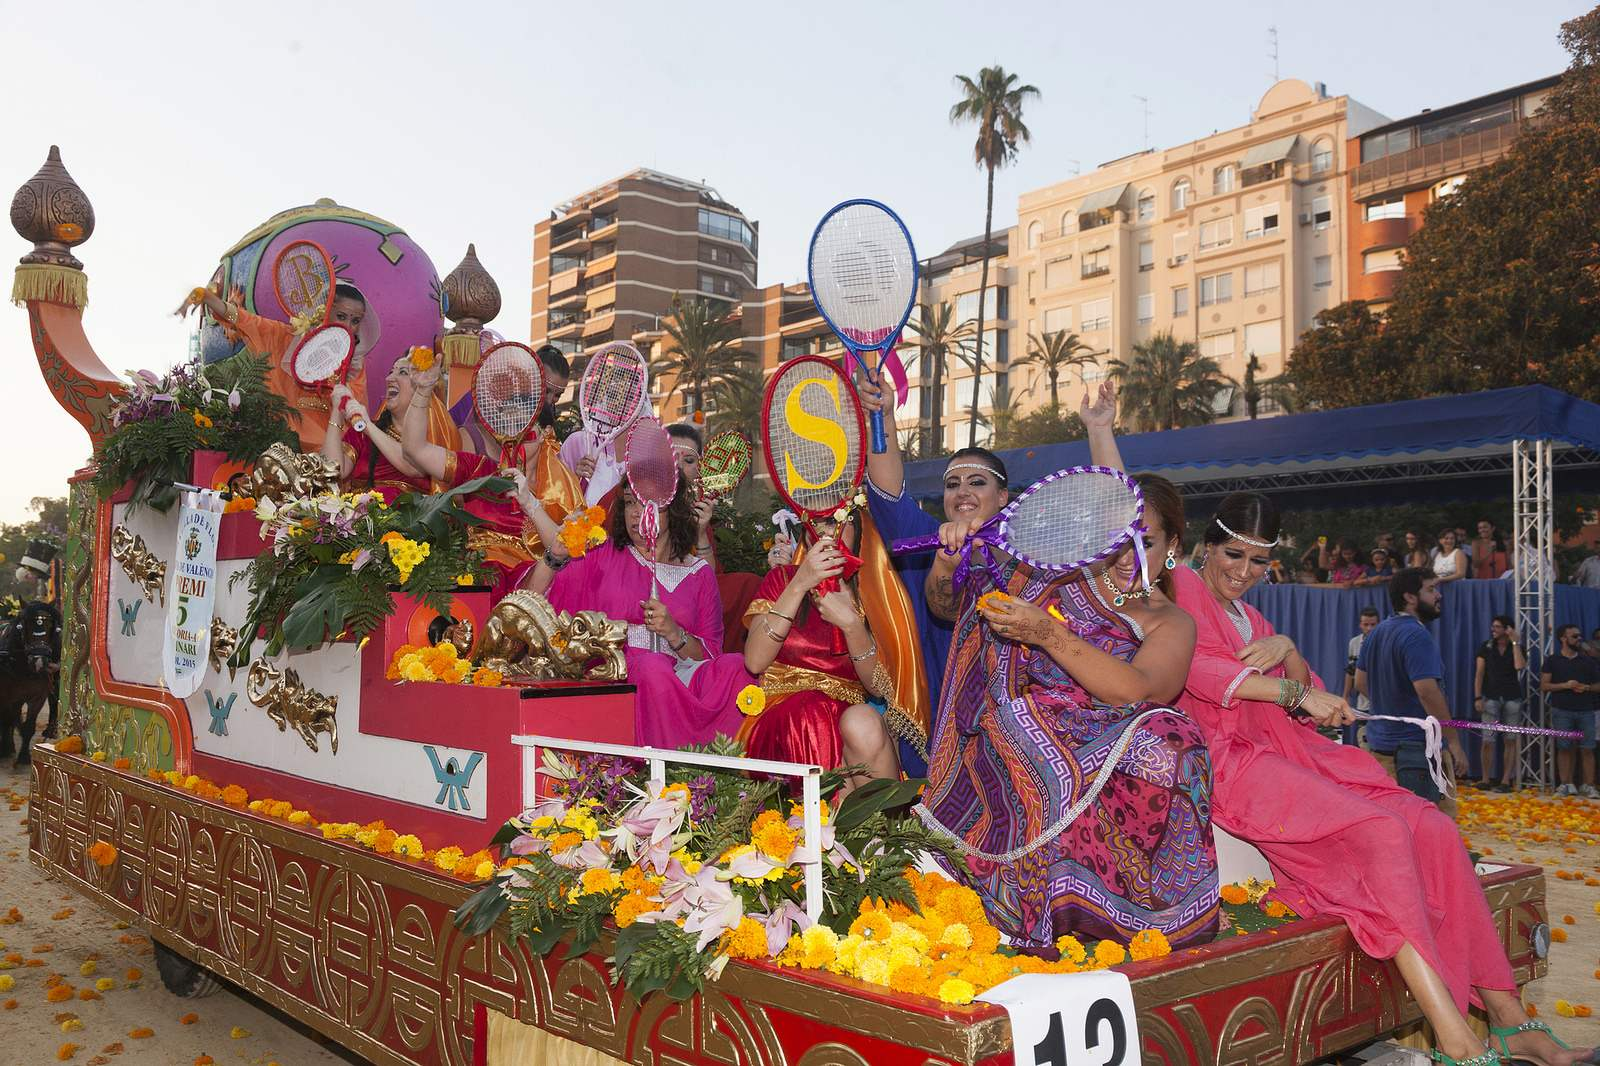 battle of flowers2 Battle of Flowers   Legendary Fiesta in Valencia